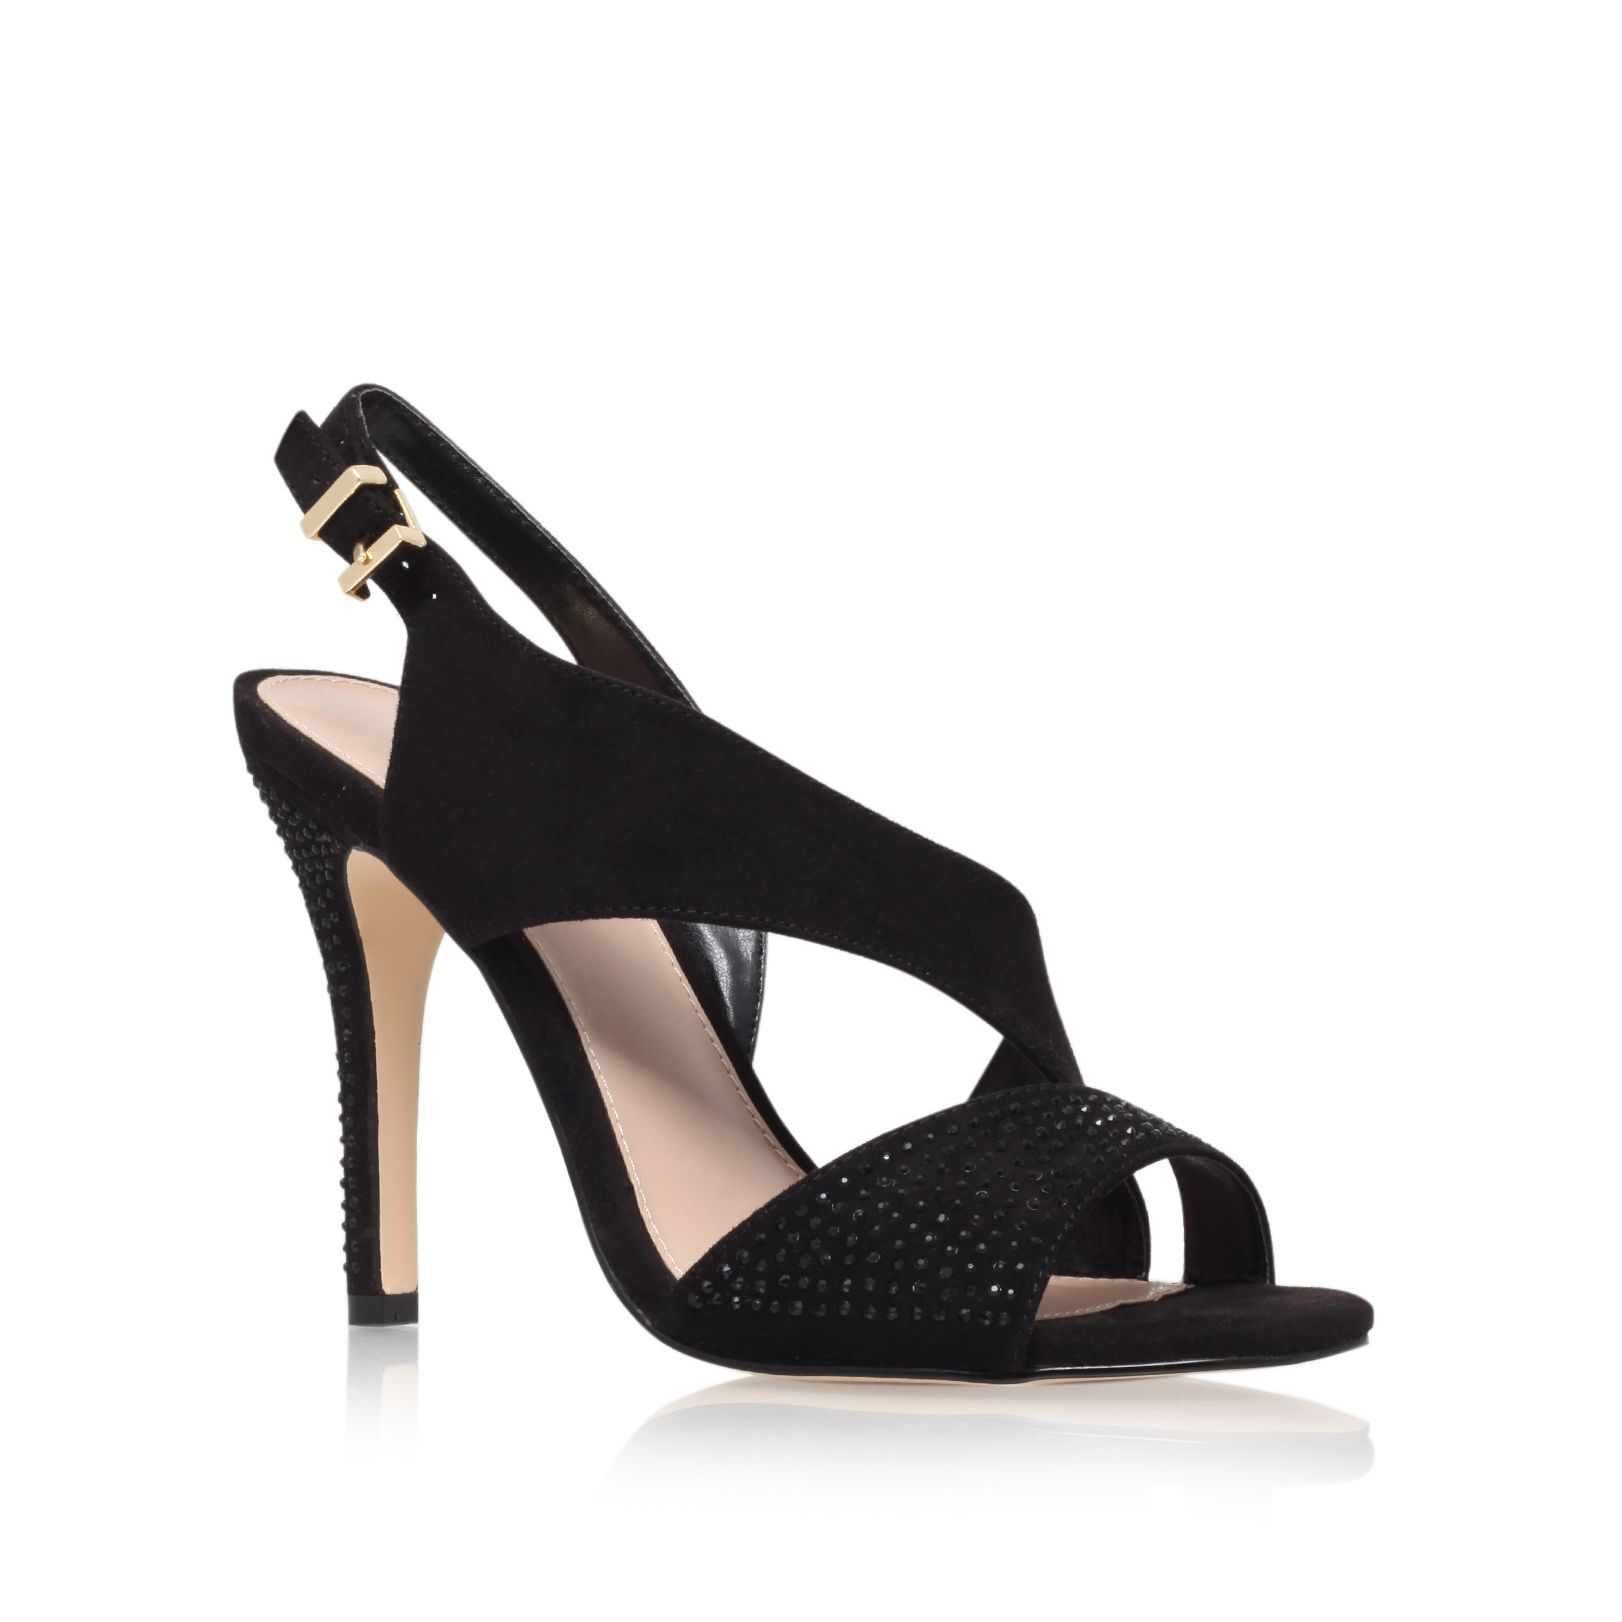 Glenda high heeled sandals